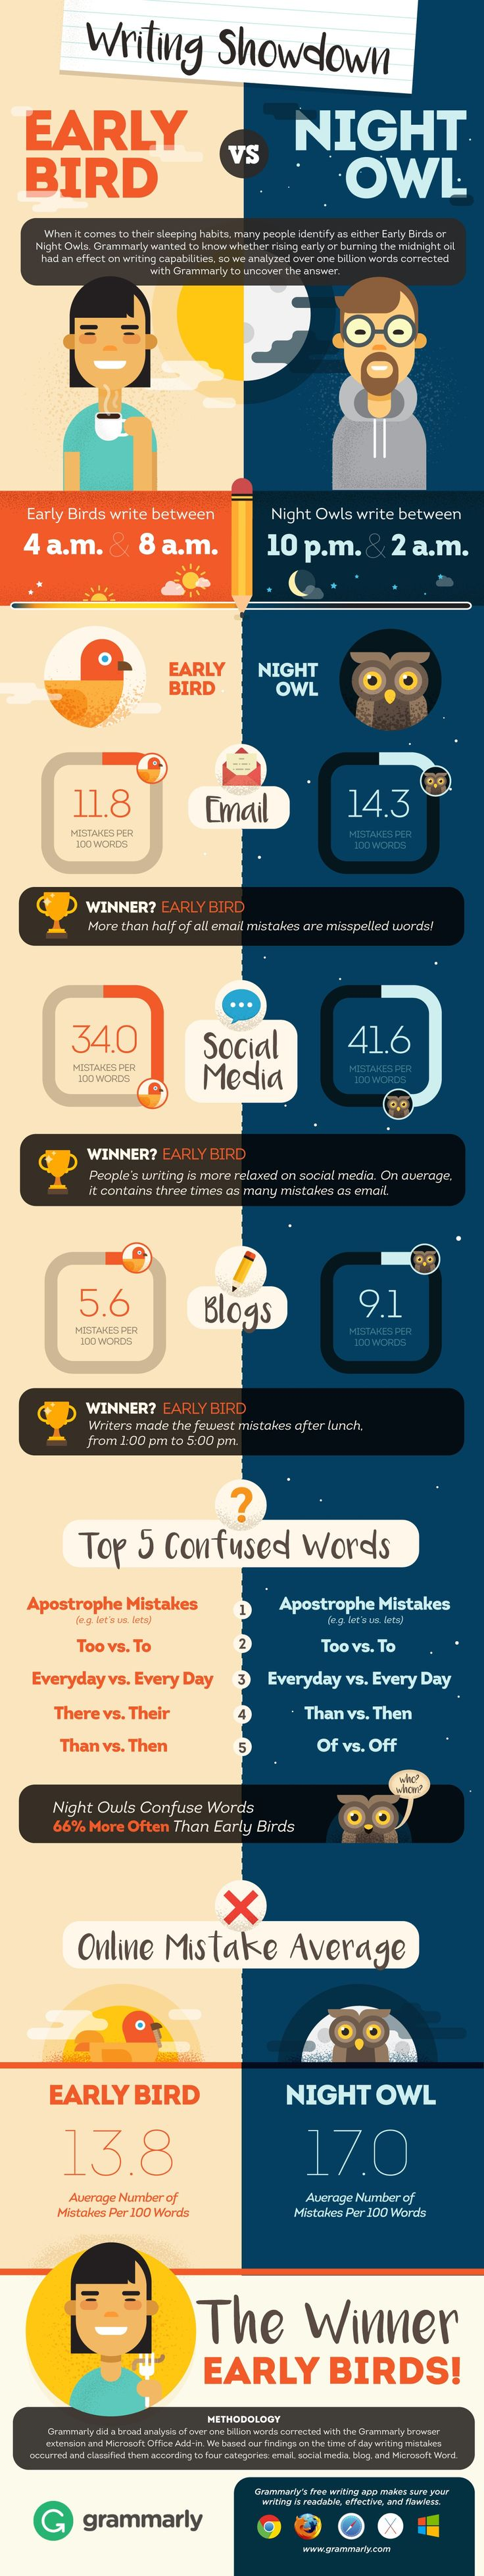 Early Birds vs. Night Owls: When's the Best Time of Day to Write? [Infographic]